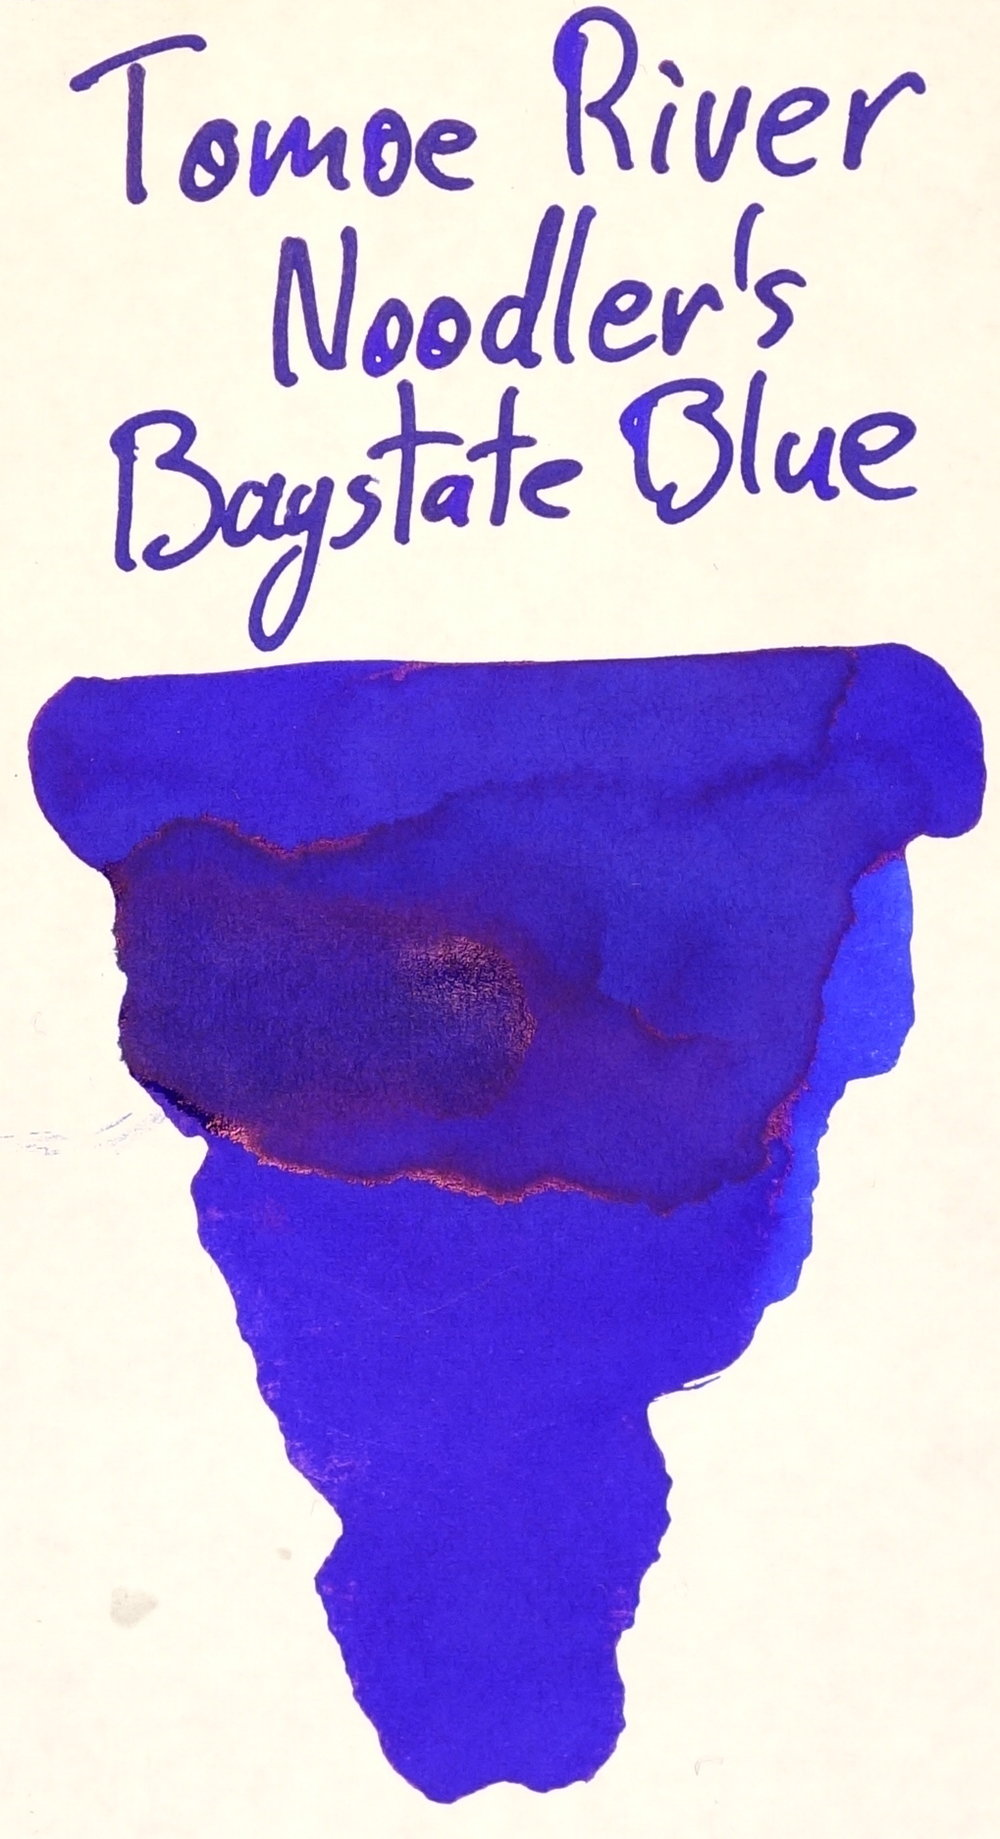 Noodler's Baystate Blue Tomoe River.JPG